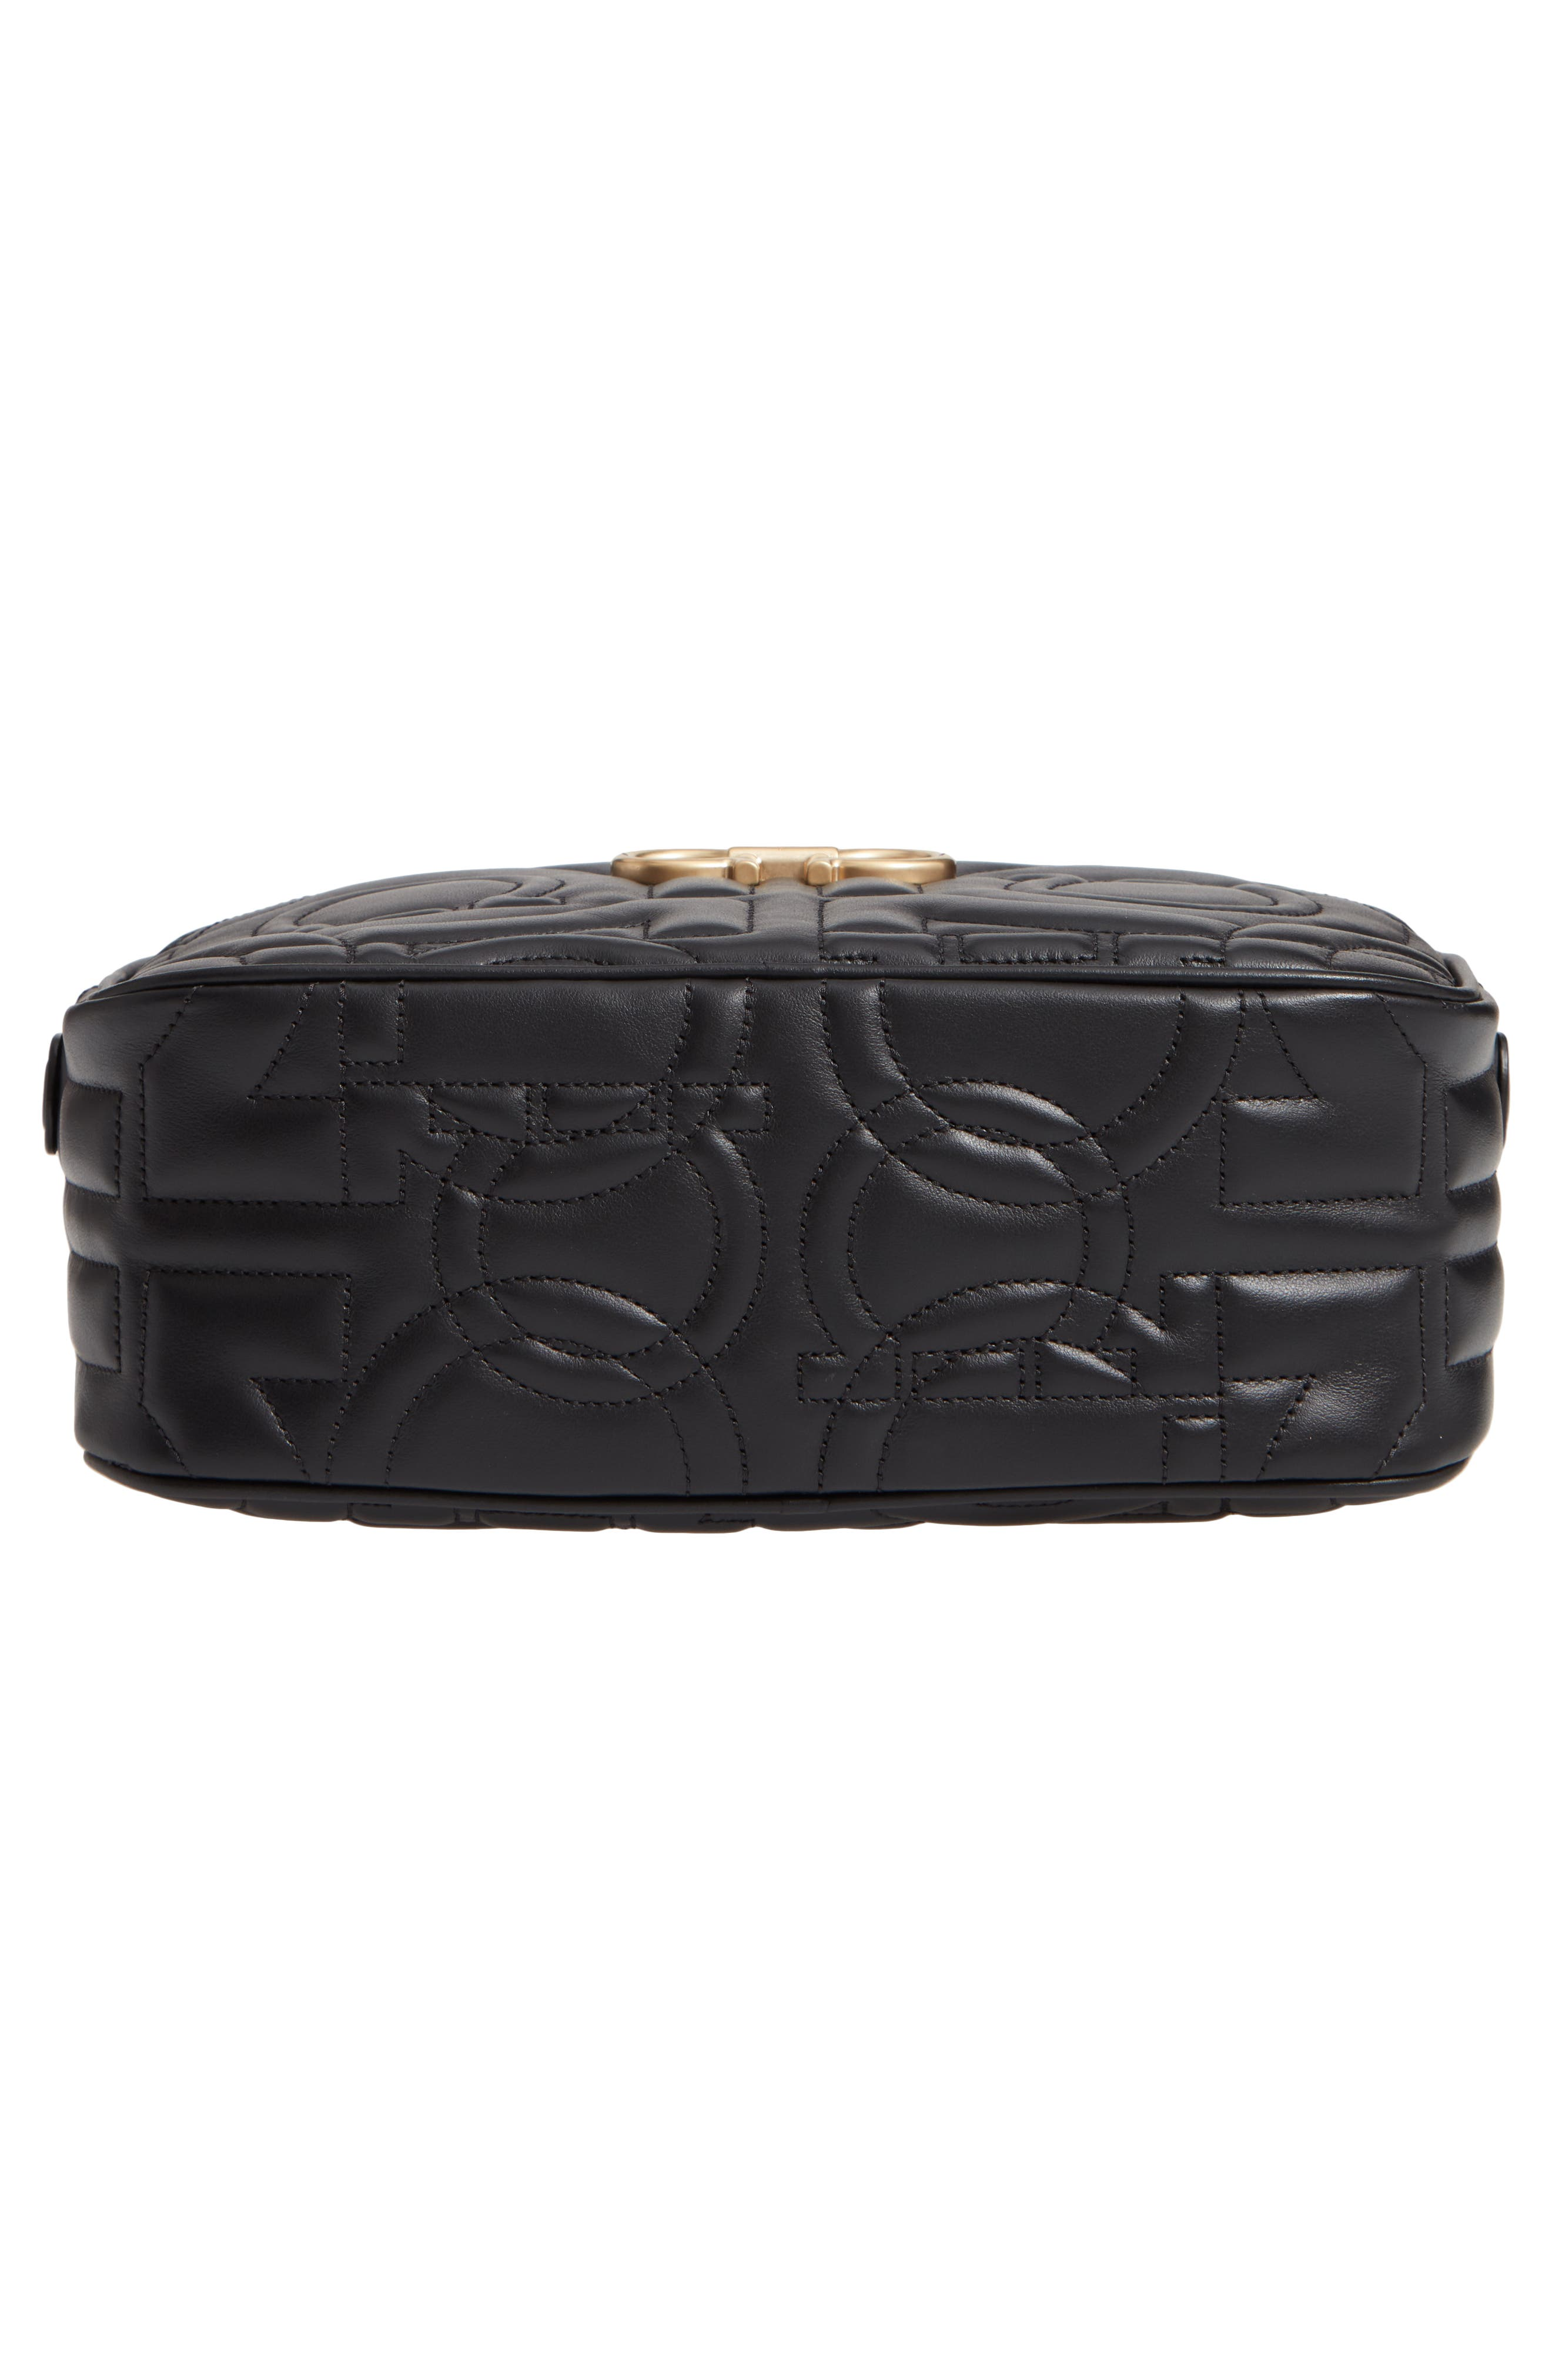 City Quilted Gancio Leather Camera Bag,                             Alternate thumbnail 3, color,                             Black